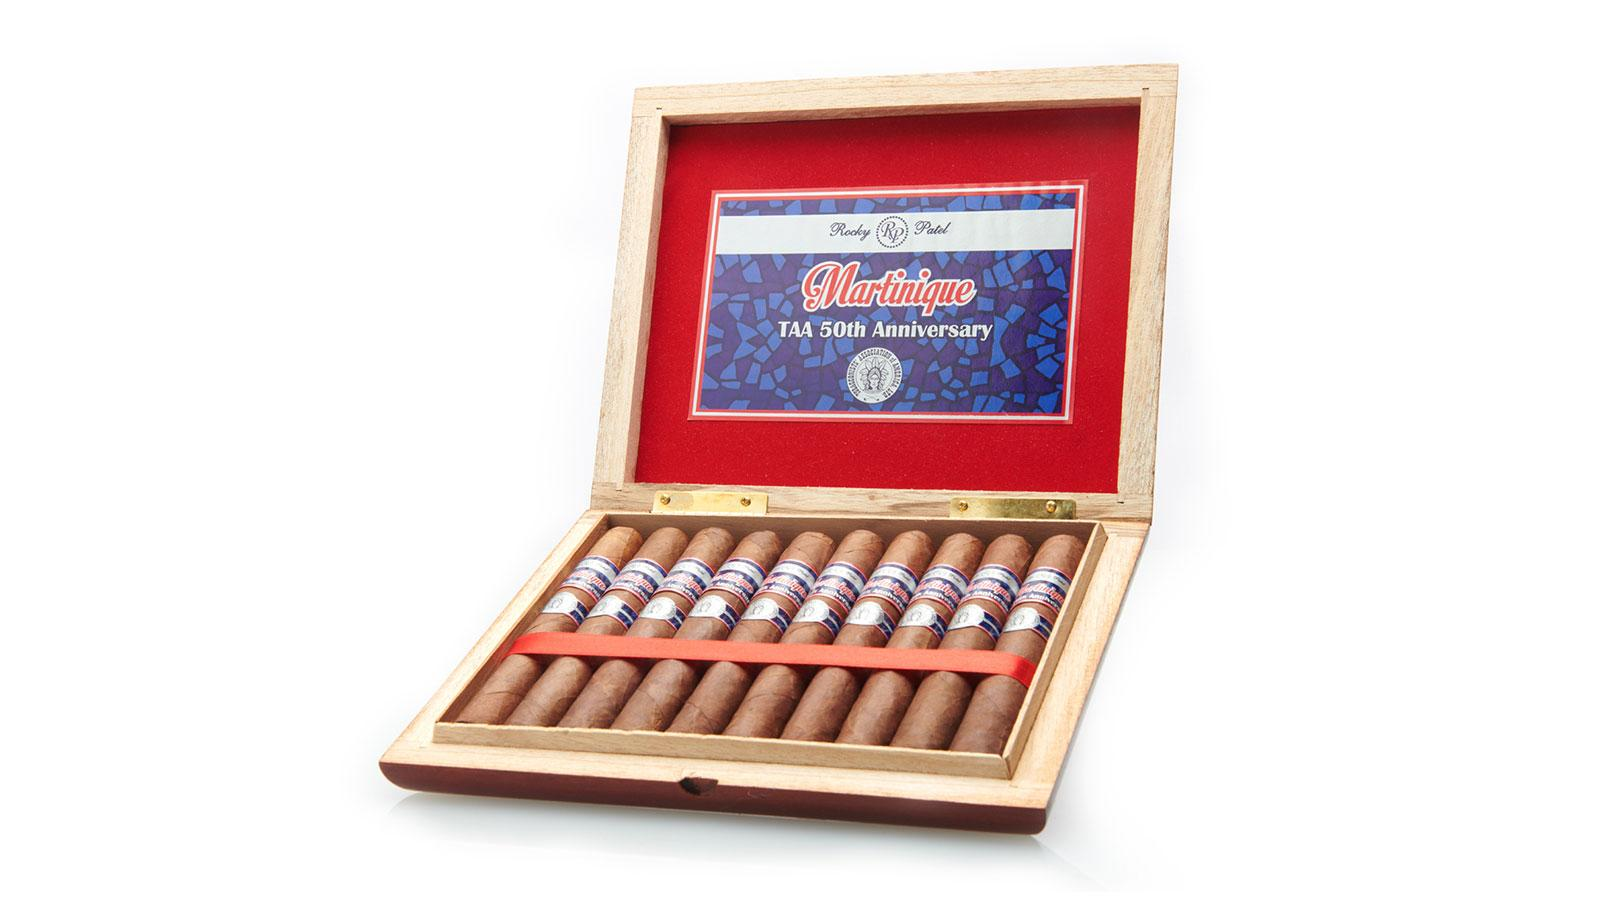 Martinique Is Rocky Patel's TAA-Exclusive Cigar